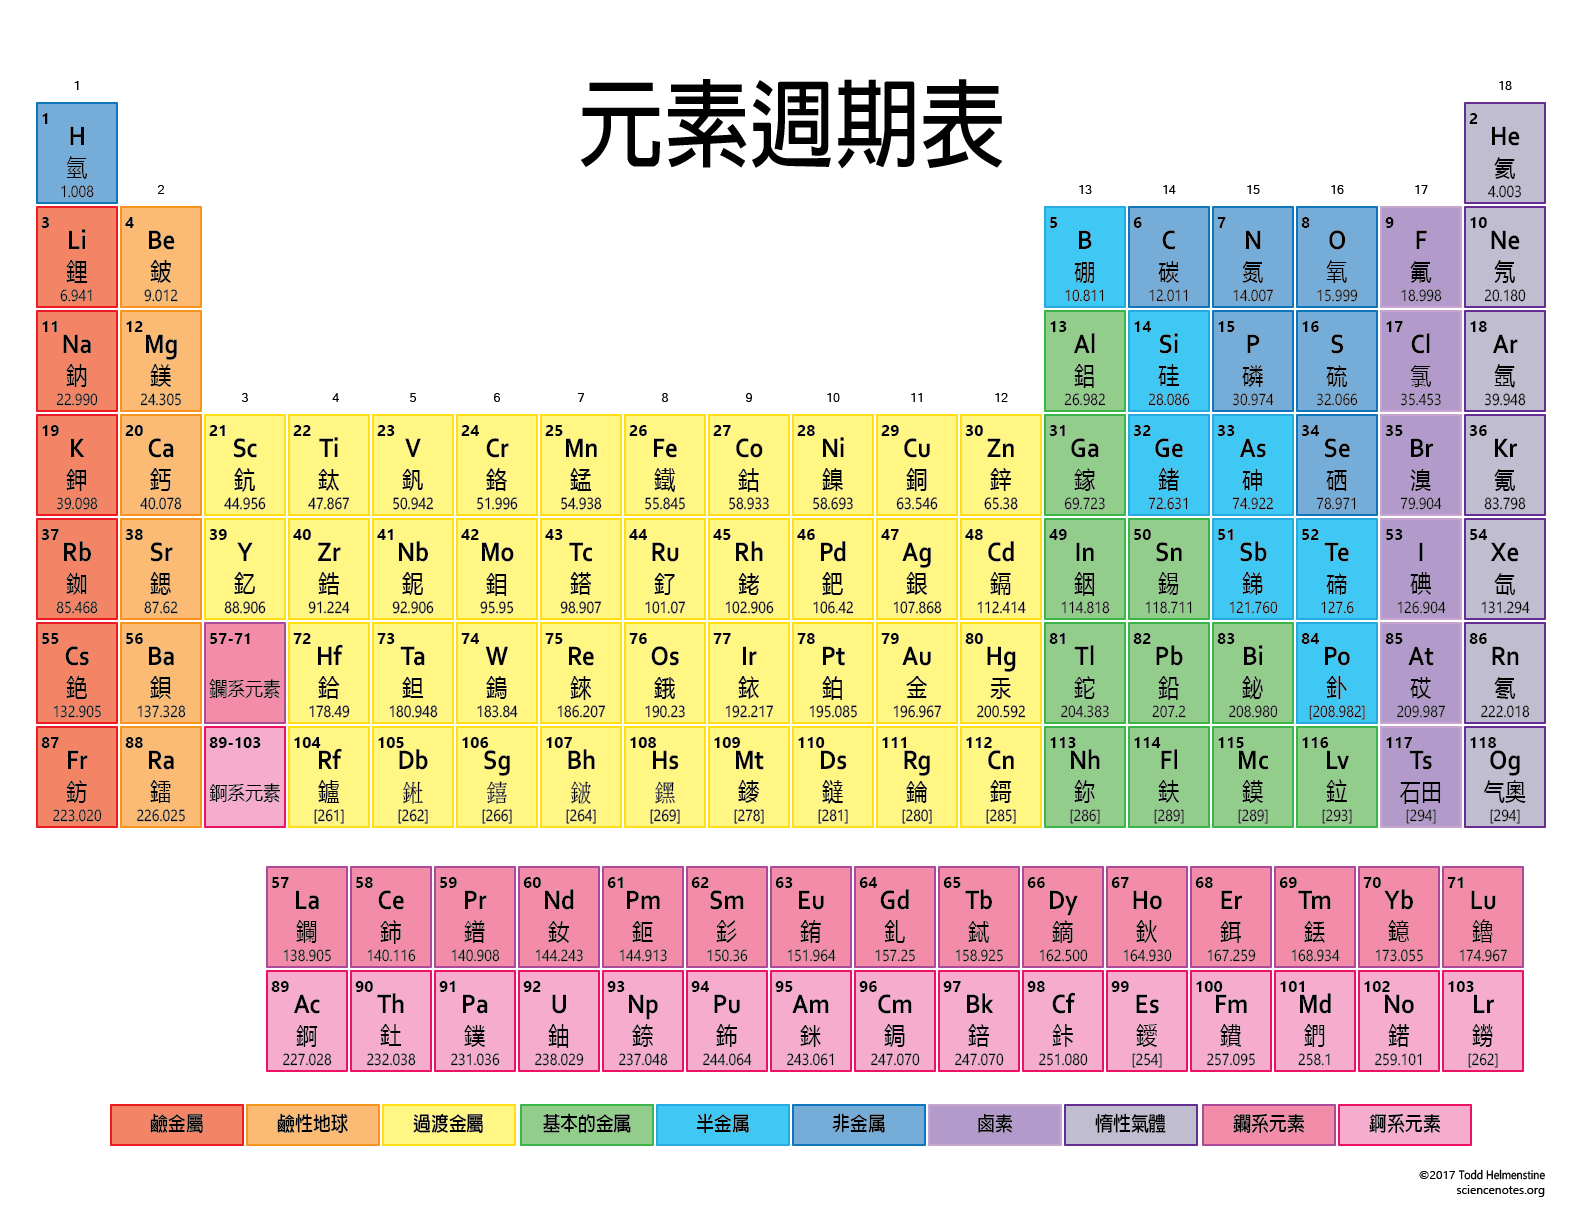 Yuns zhouq biao chinese periodic table of the elements yuansu zhouqi biao this color periodic table contains all 118 elements atomic numbers urtaz Images